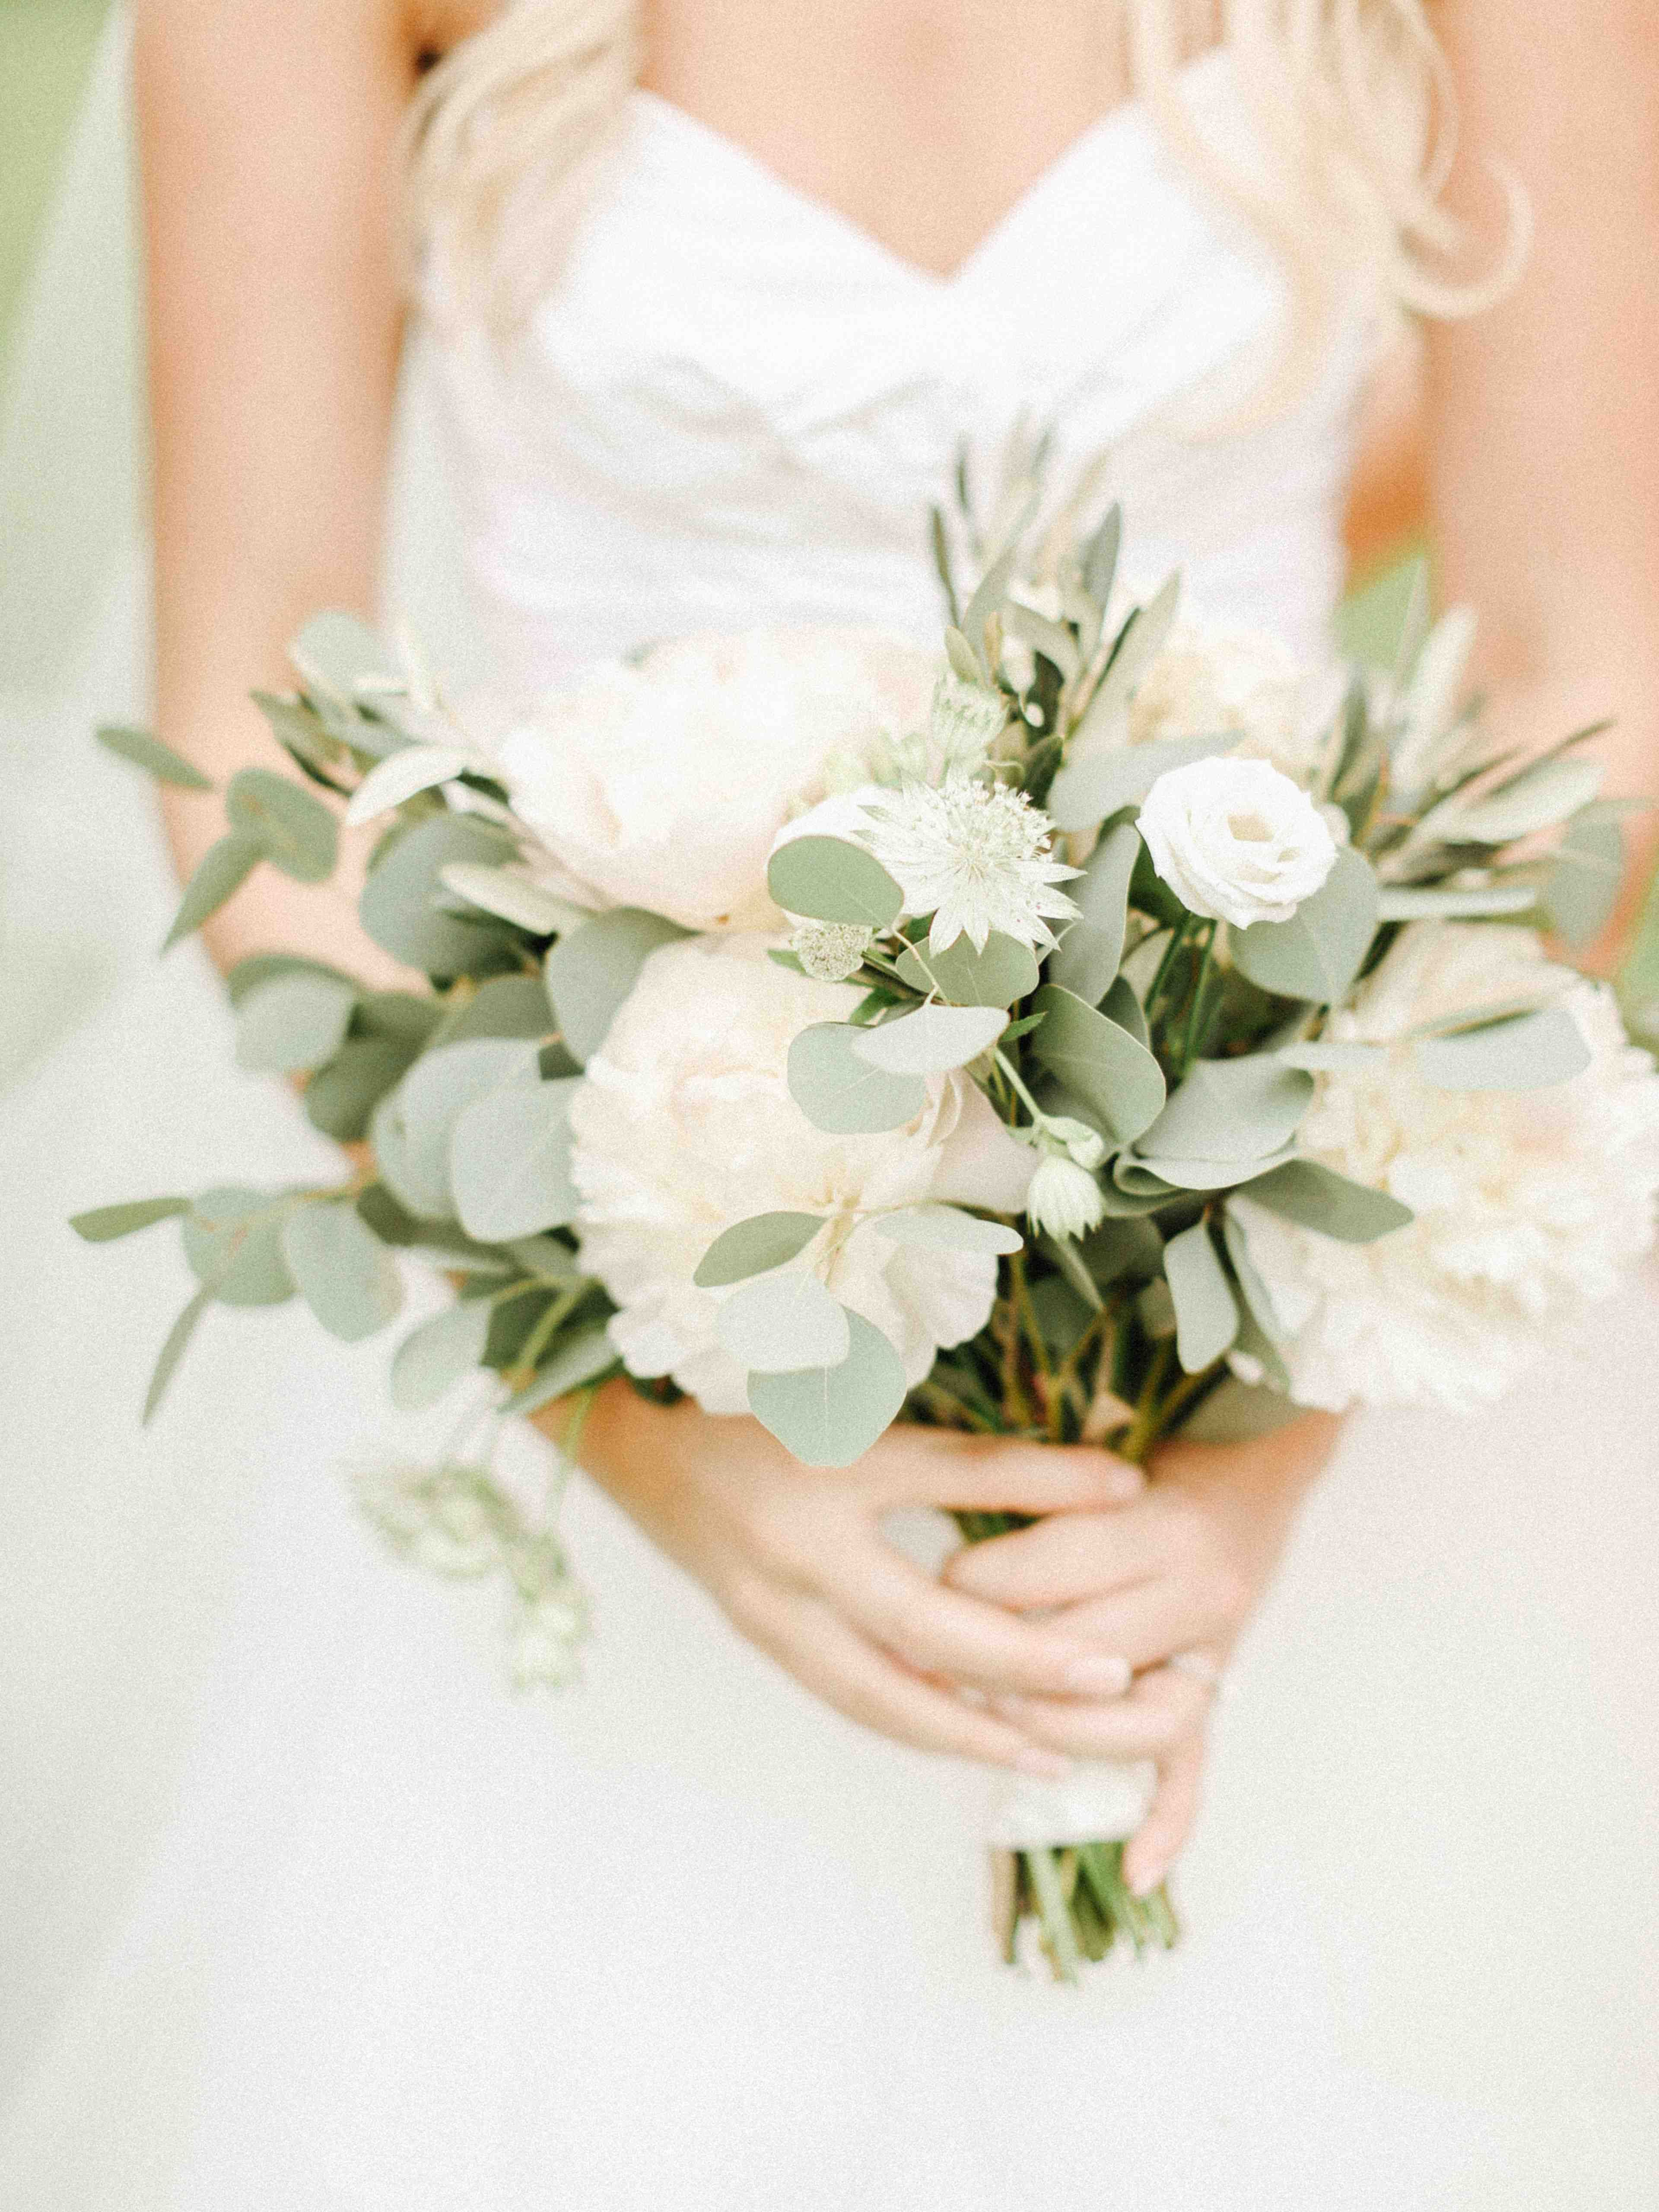 Romantic Loose And Natural Hand Tie With Lots Of White Flowers And